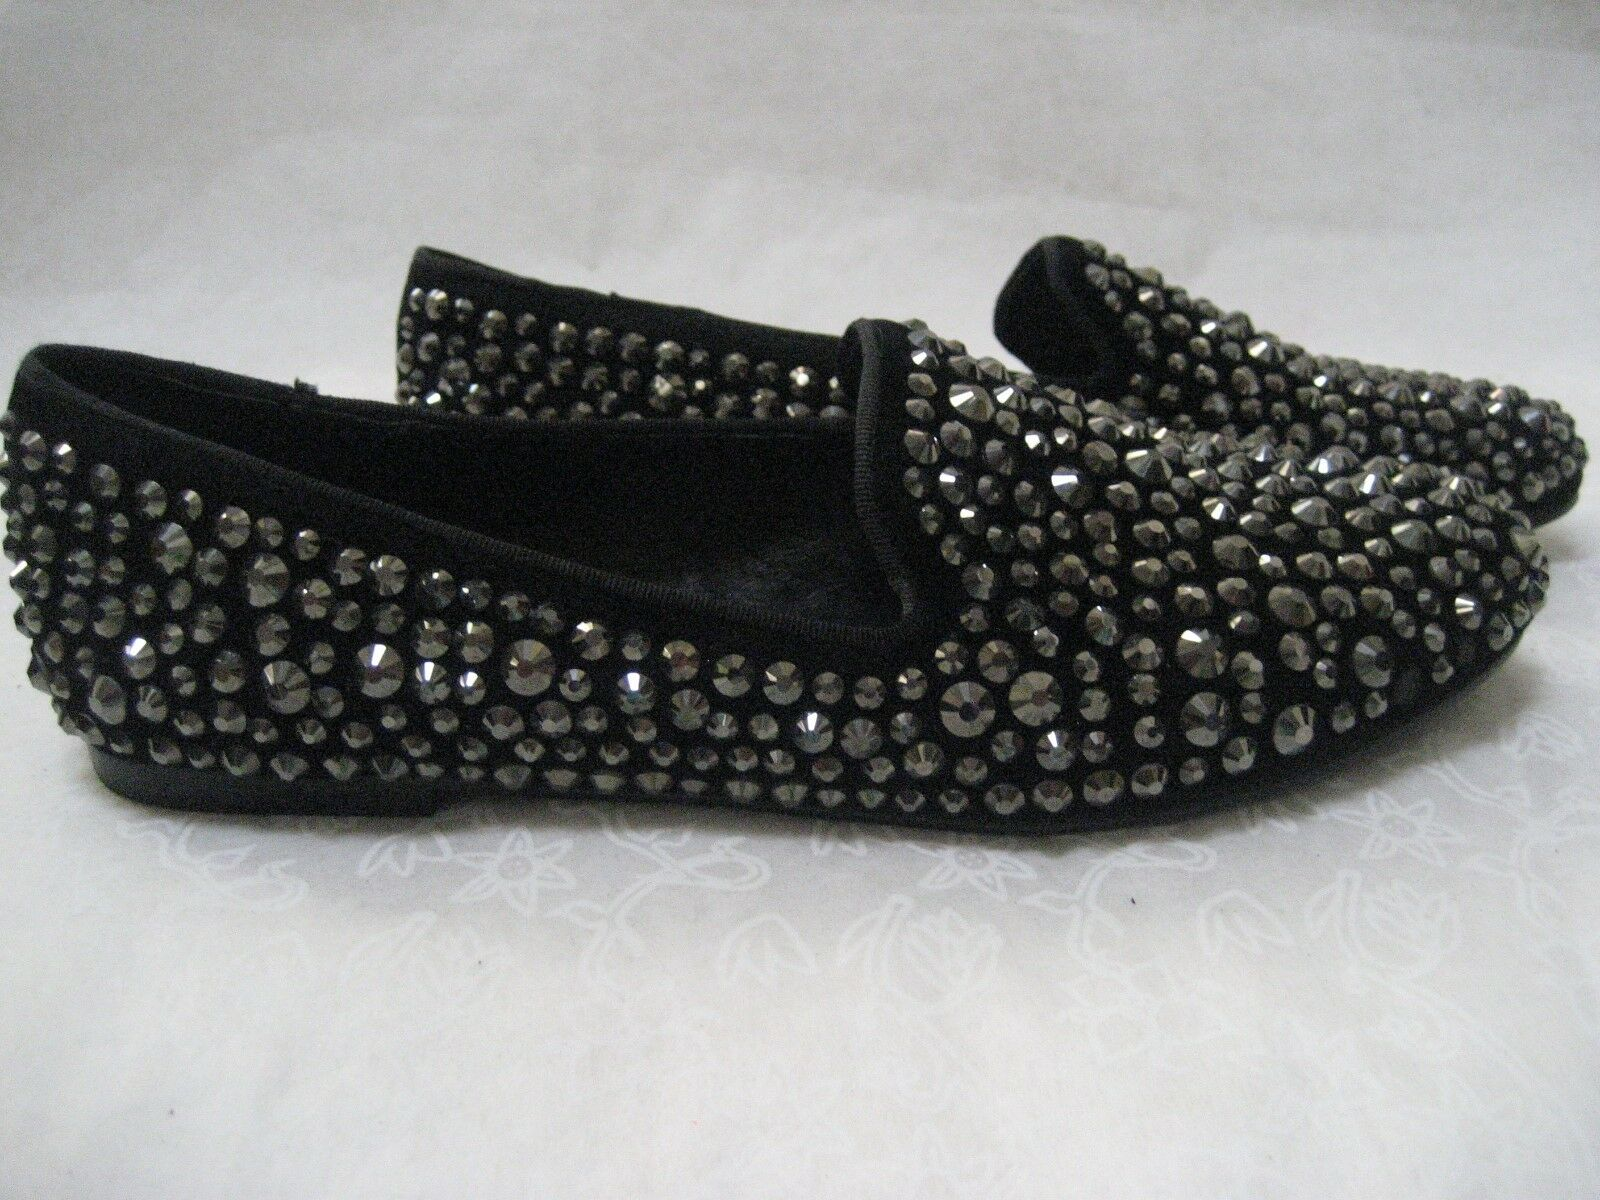 $129 STEVEN BY STEVEN MADDEN BLACK RHINESTONE LOAFERS SHOES SIZE 9 M - NEW